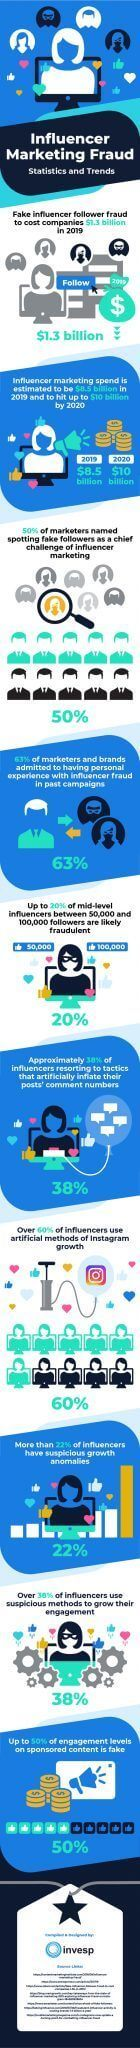 Influencer Marketing Fraud Could Cost Your Business